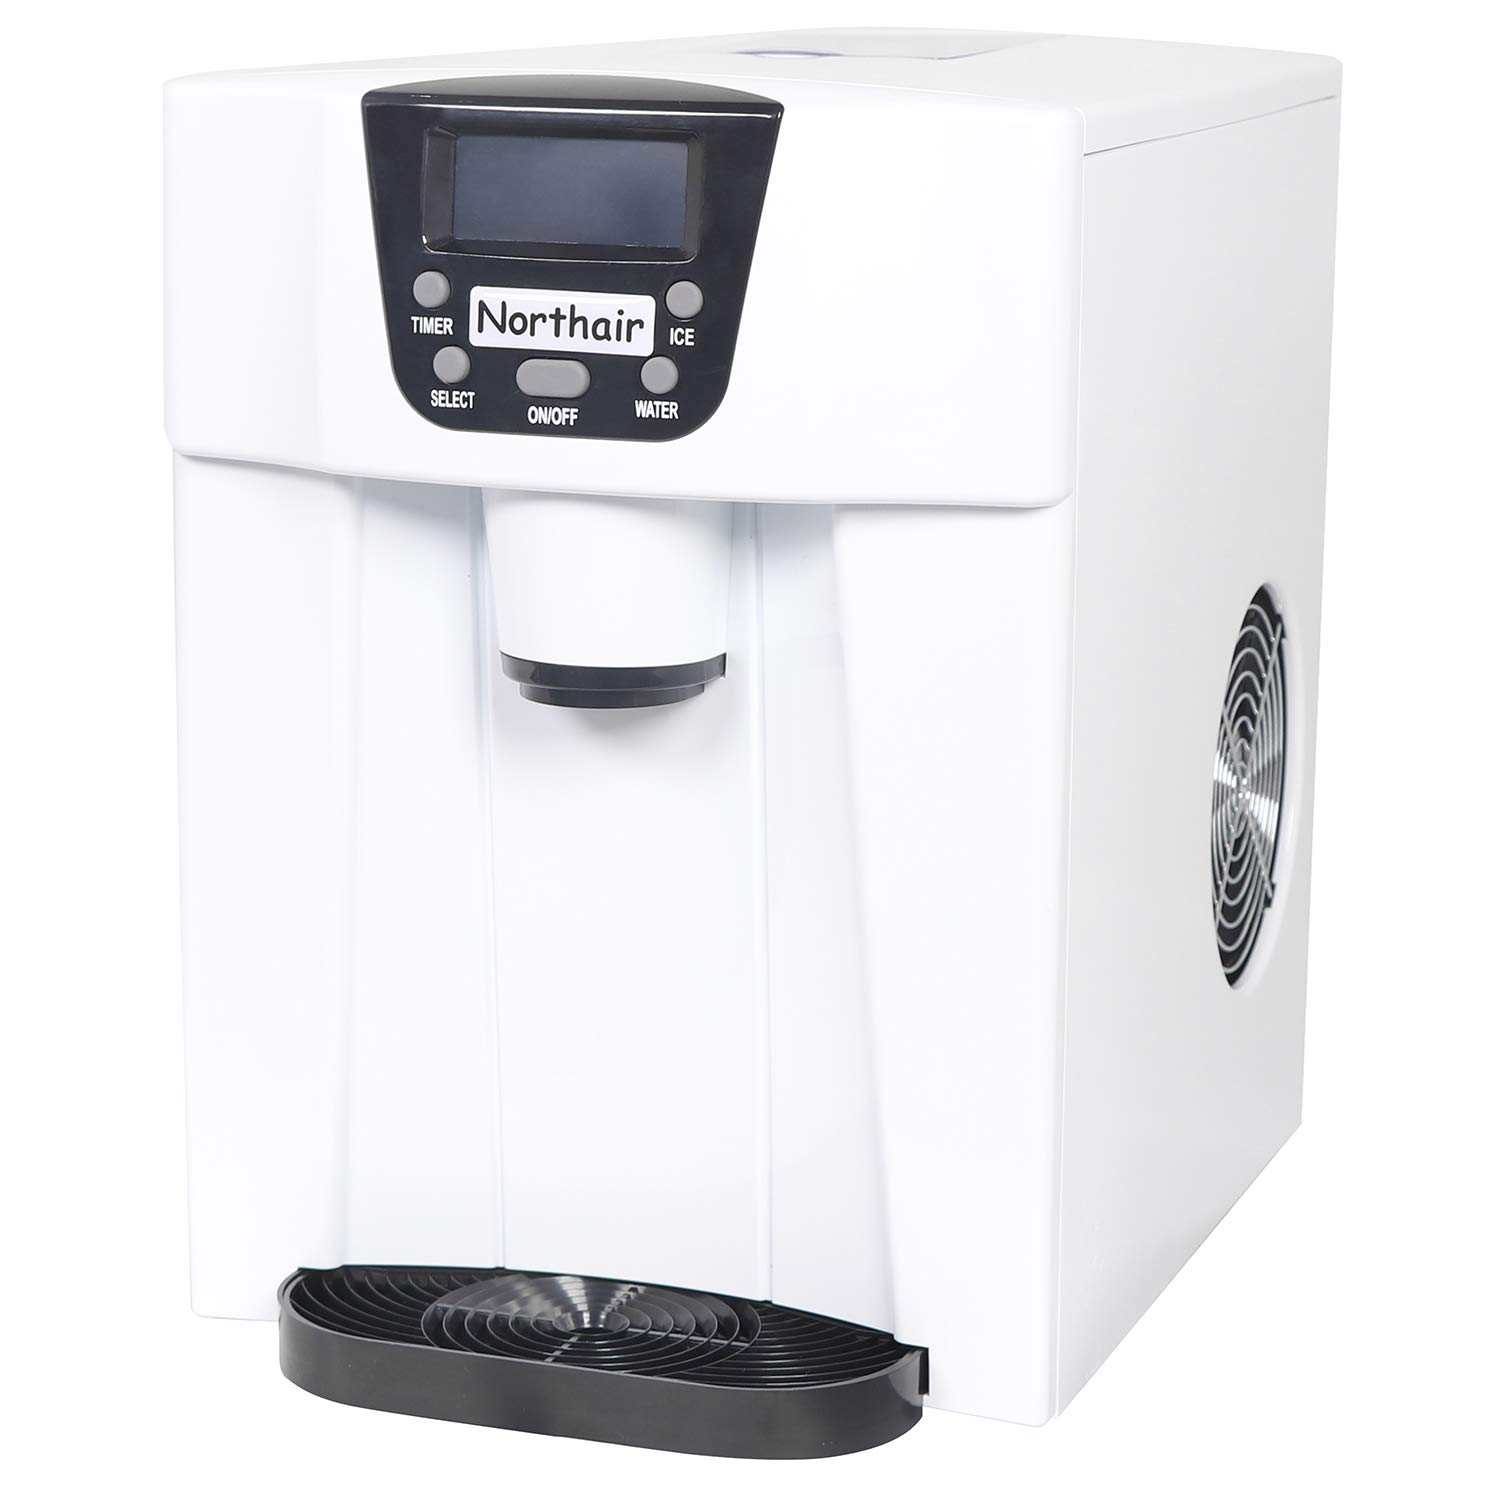 Northair 24 Hour Ice Maker and Water Dispenser with Automatic Shut-down System,S-L 2 Size Bullet Ice, with LCD Display,White